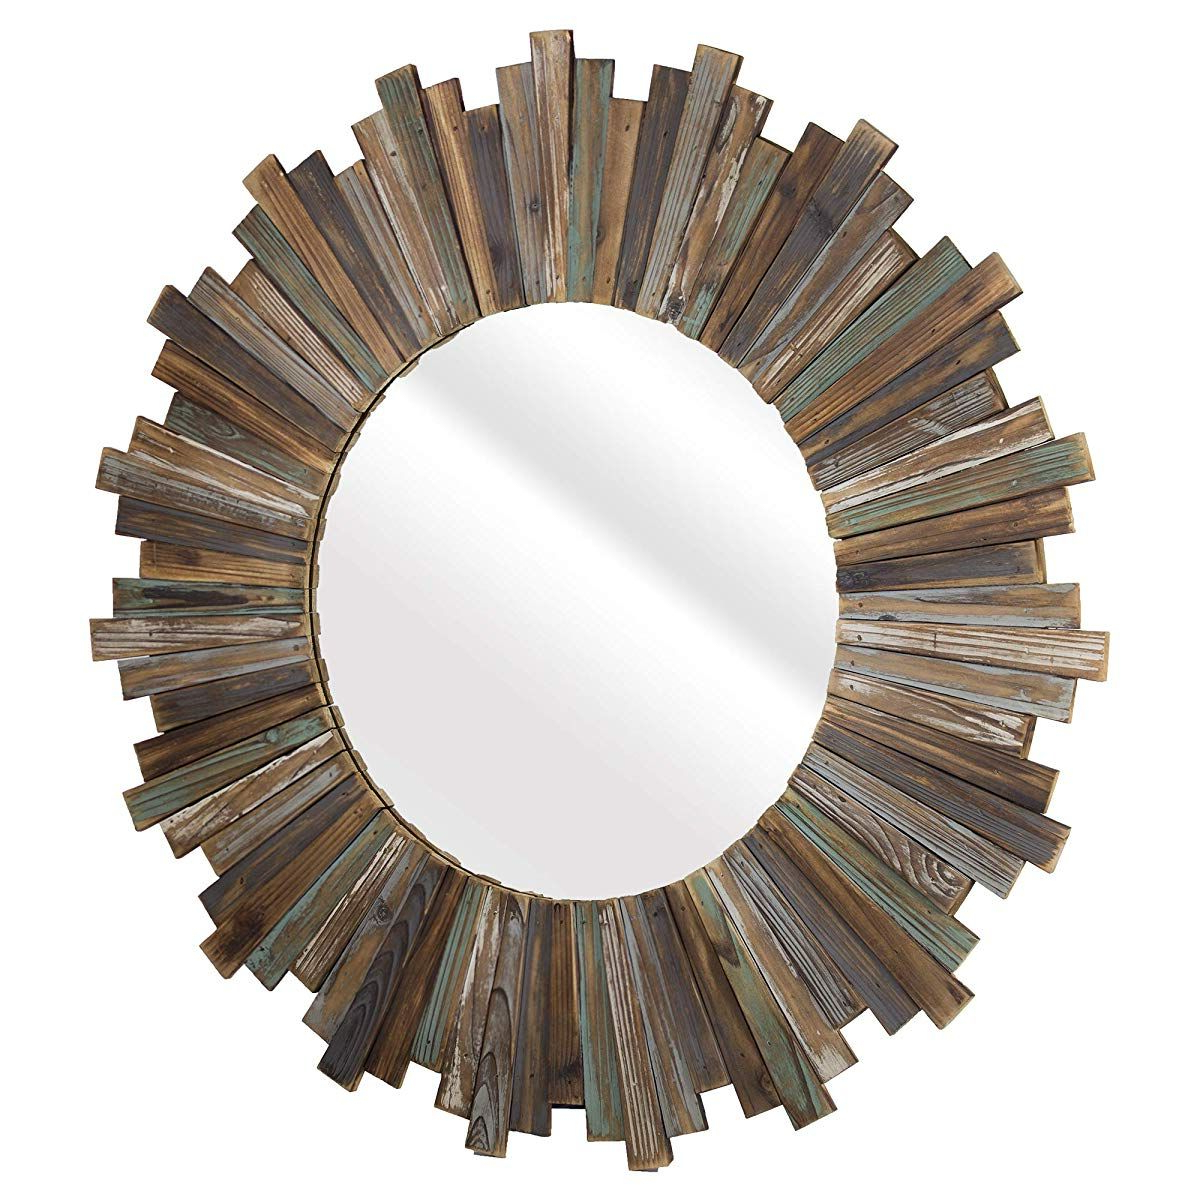 "Perillo Burst Wood Accent Mirrors Throughout Most Current Distressed Wood 36"" Round Sunburst Wall Vanity Accent Mirror (Gallery 3 of 20)"